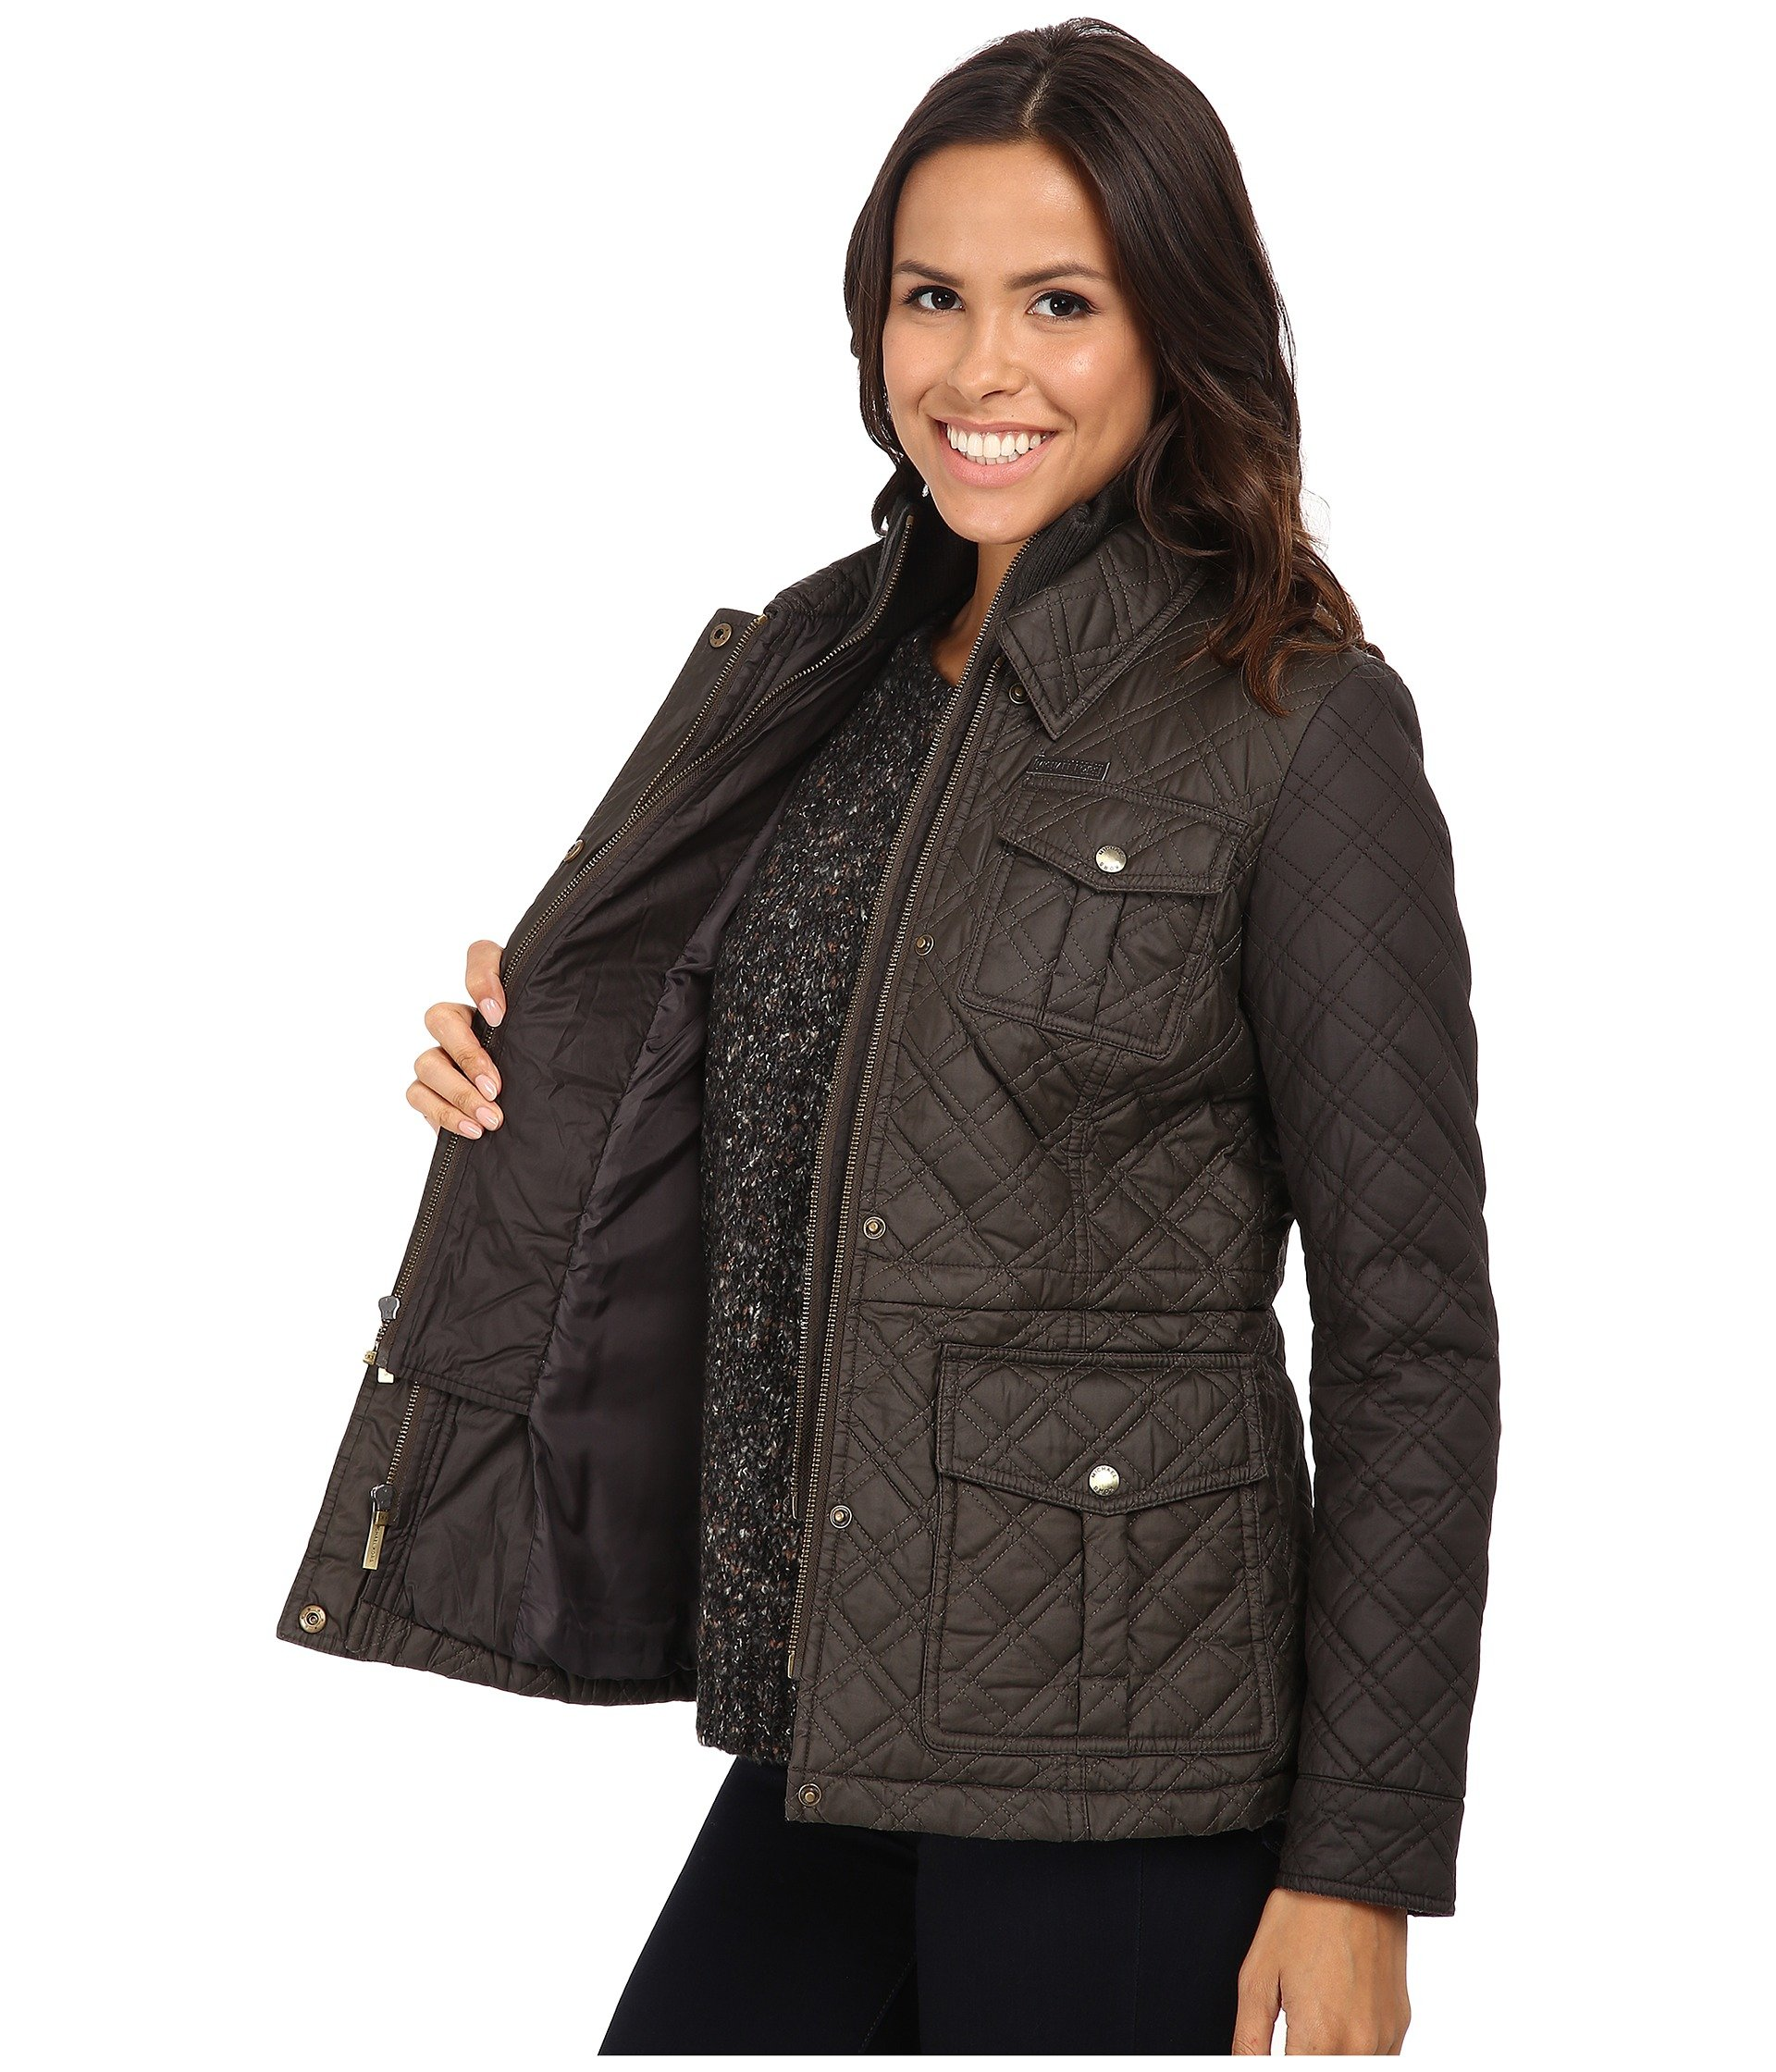 Lyst - MICHAEL Michael Kors Quilted Field Jacket W  Bib in Gray 30d737a0323e